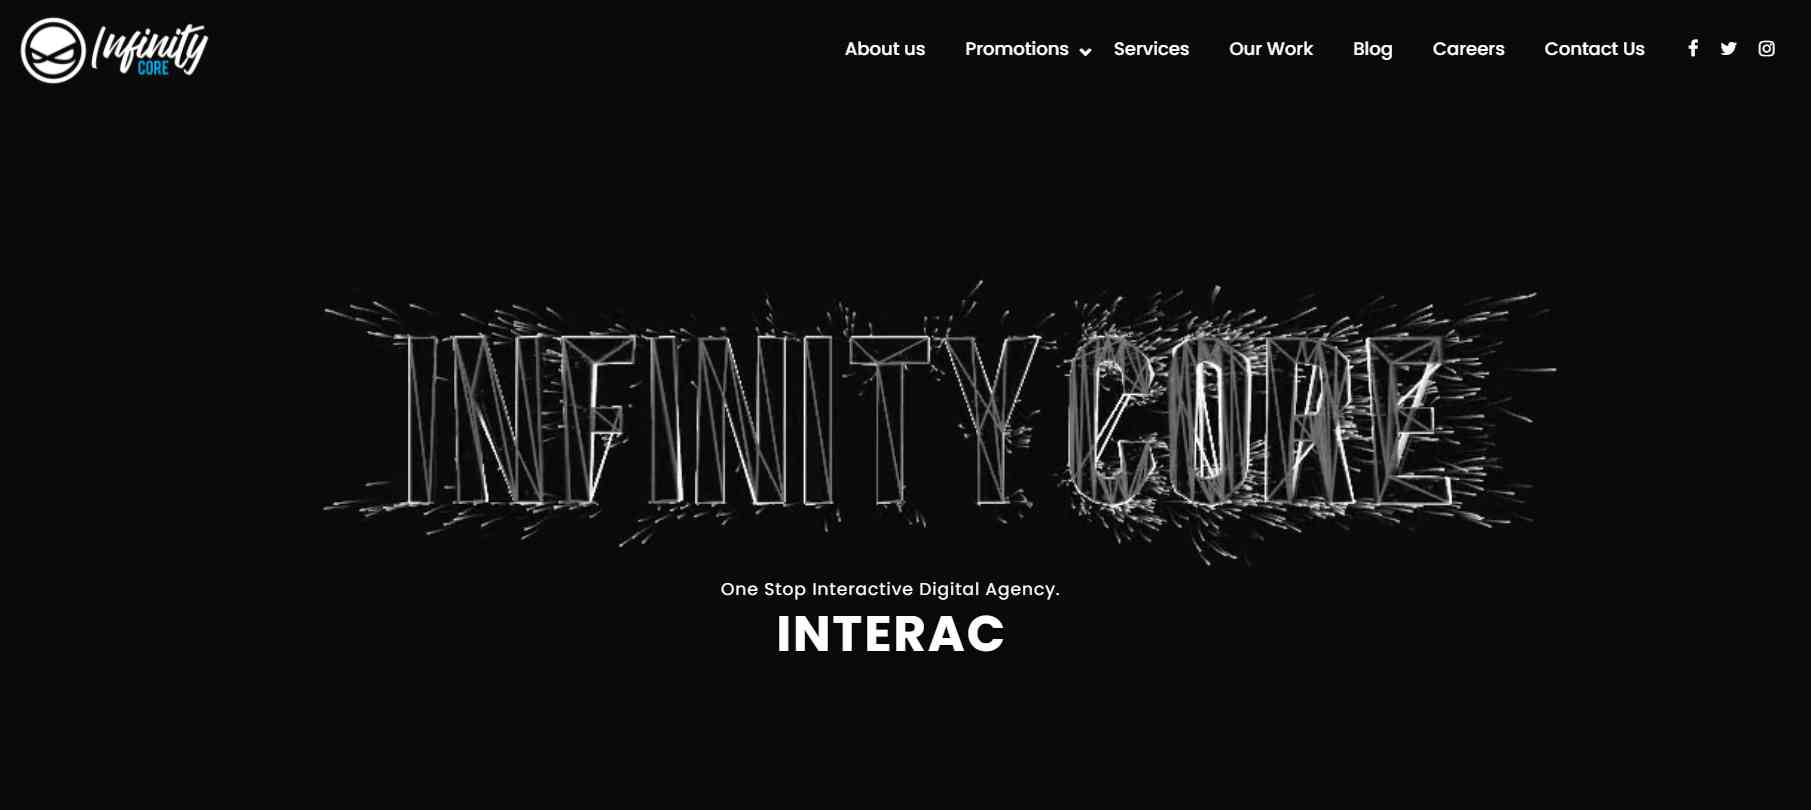 infinity core Your Ultimate Copywriting Guide In Singapore